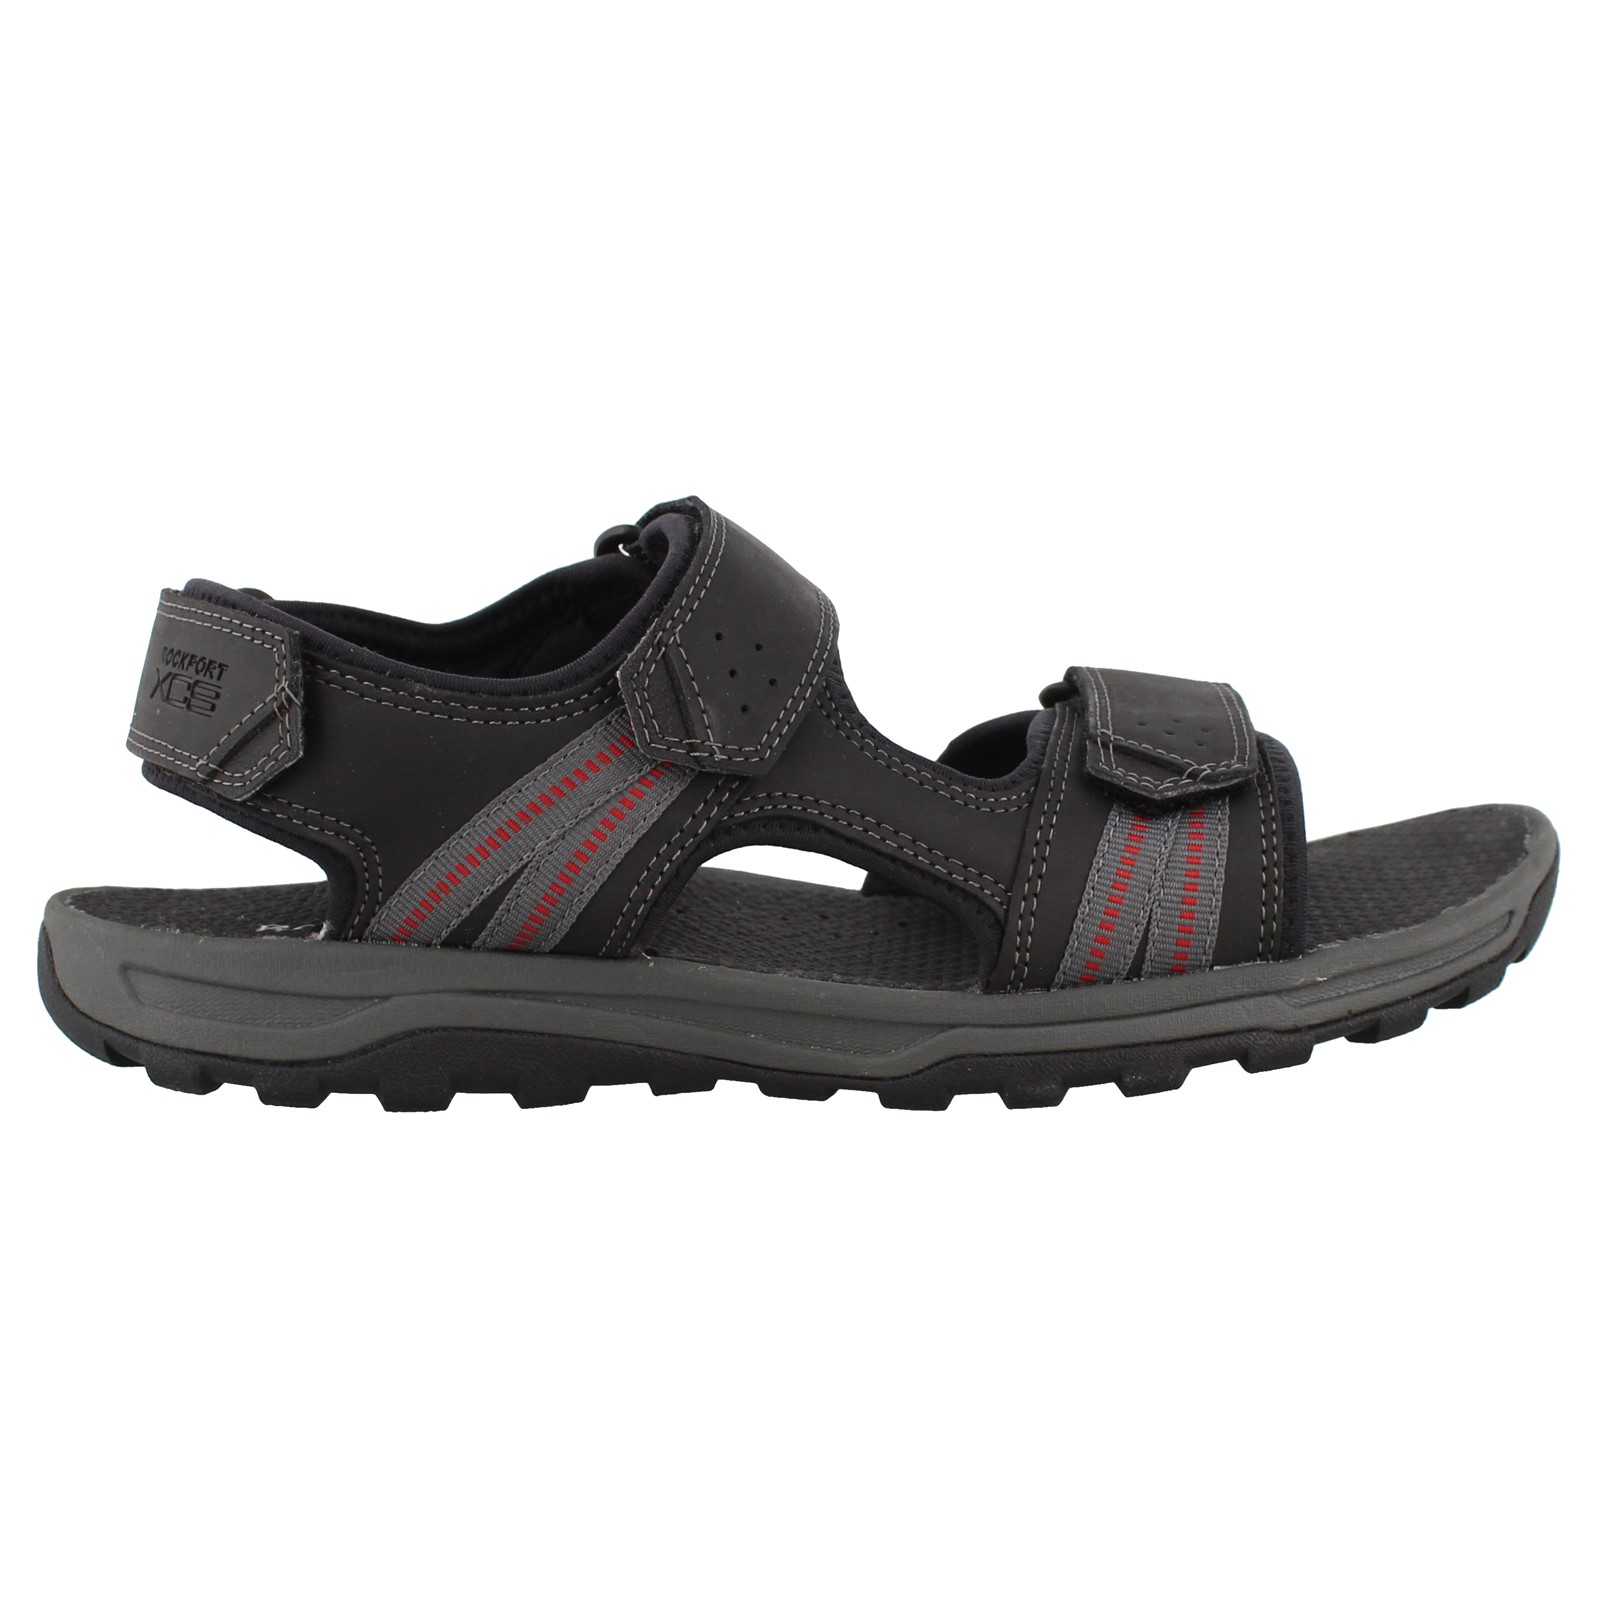 Men's ROCKPORT, TRAIL TECHNIQUE 3 STRAP TRAIL SANDAL